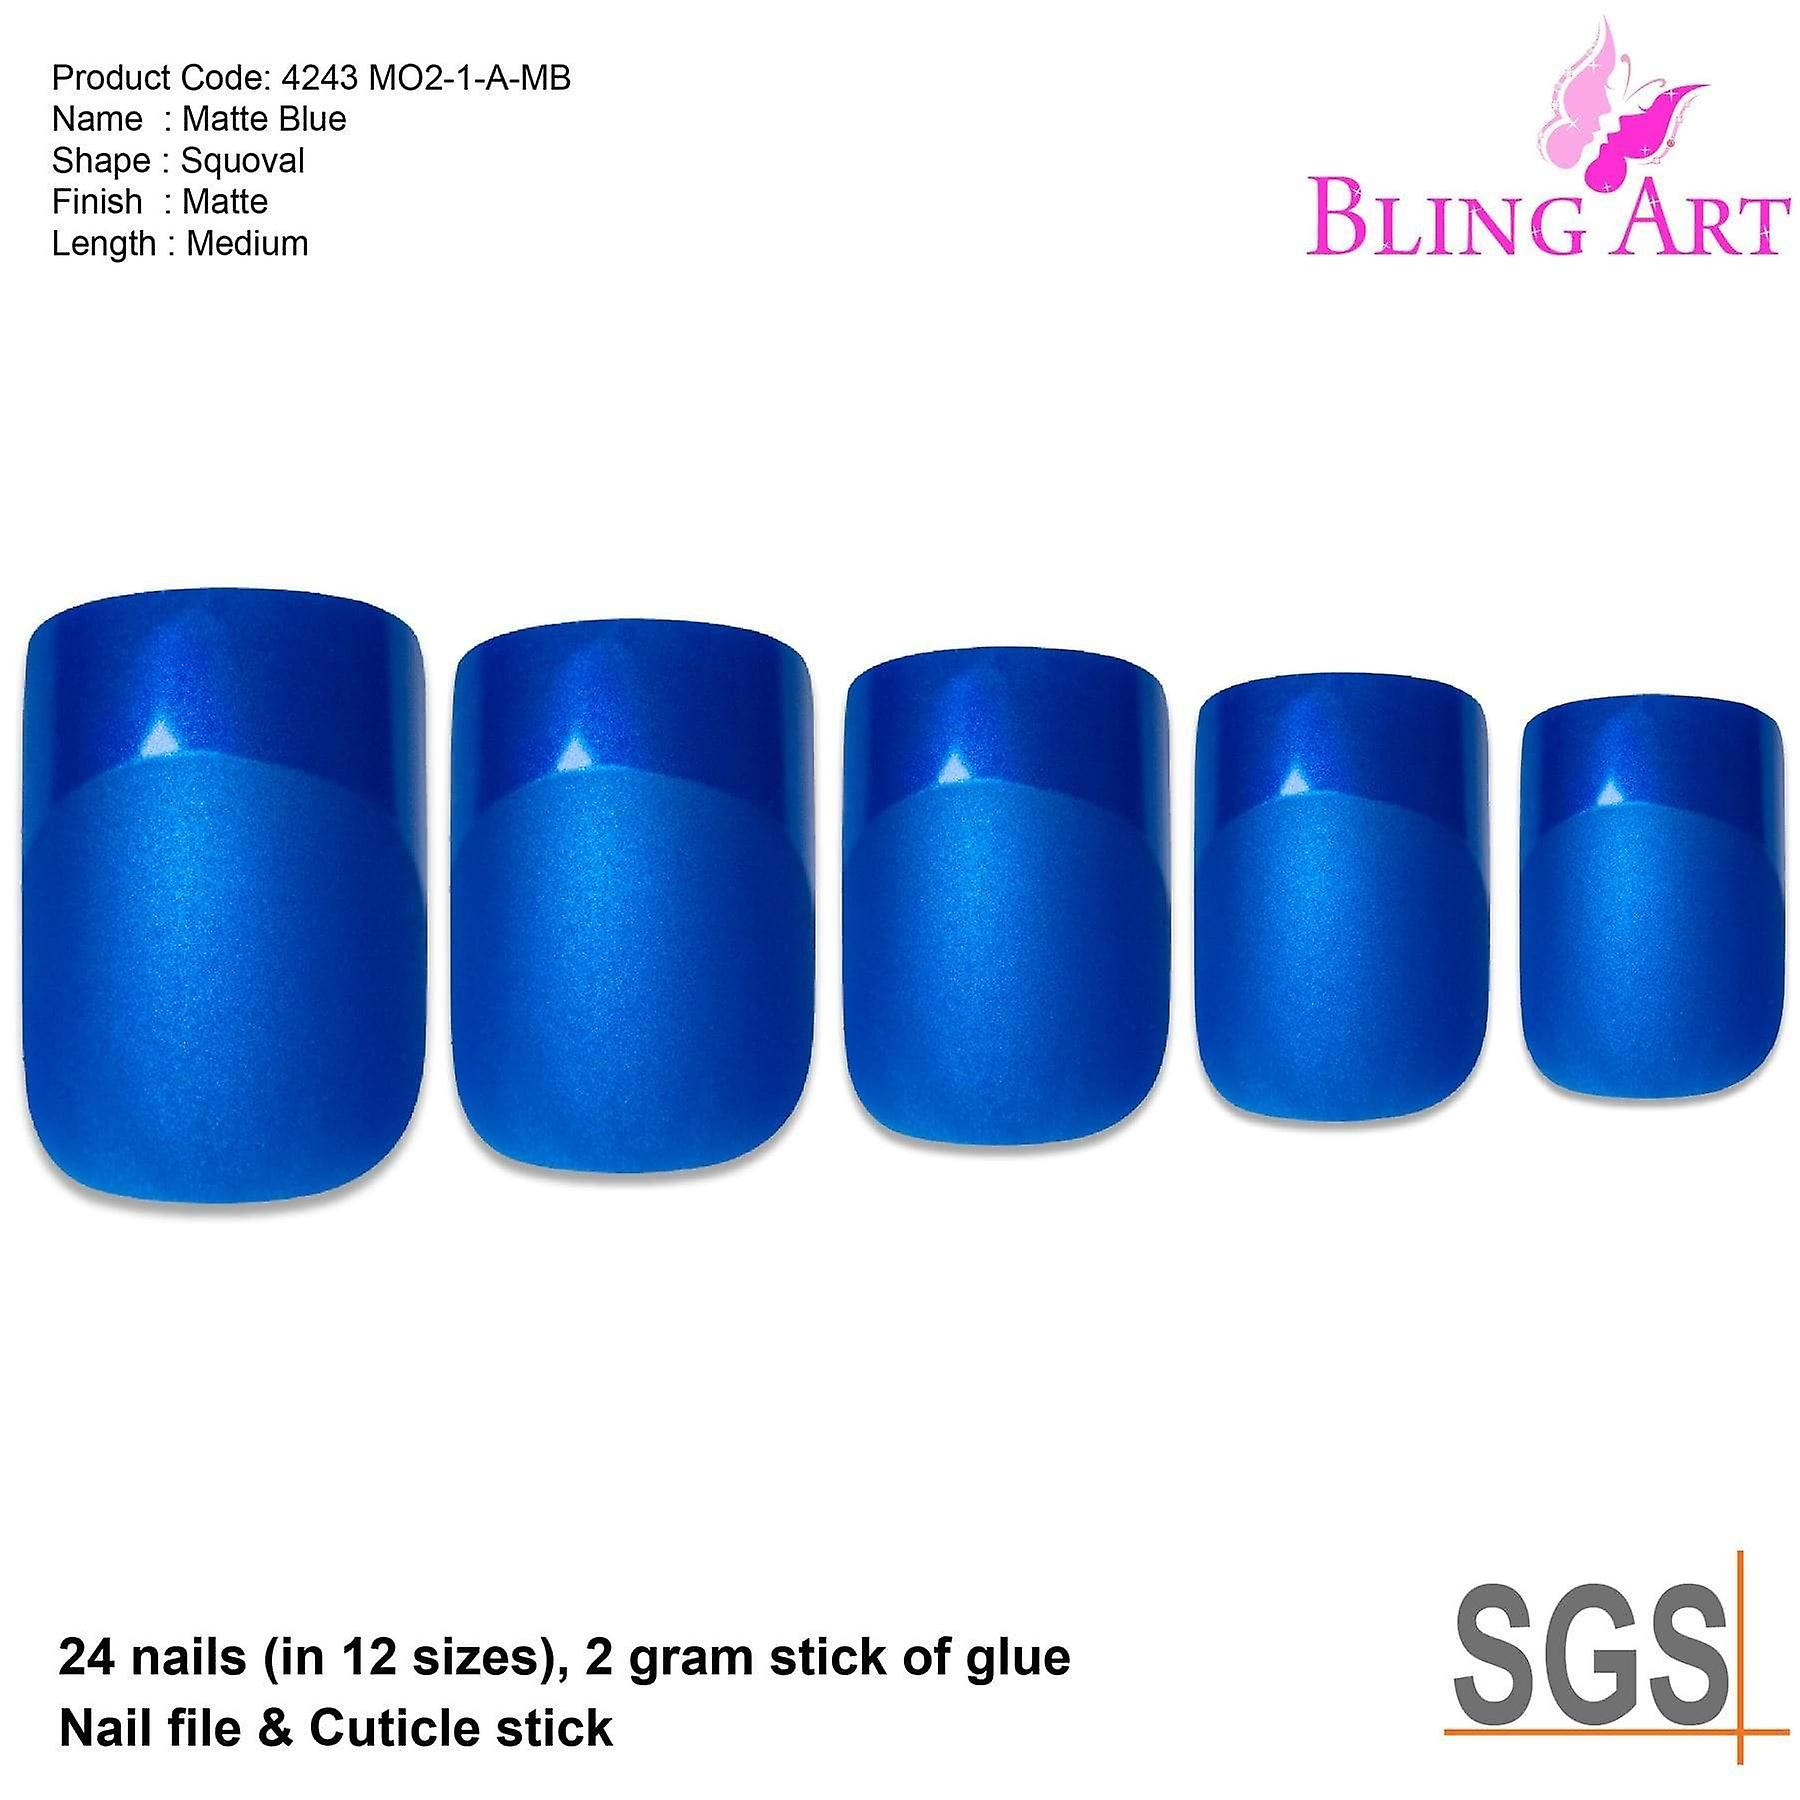 new products 746c0 972e0 False nails by bling art blue matte french manicure fake medium tips with  glue